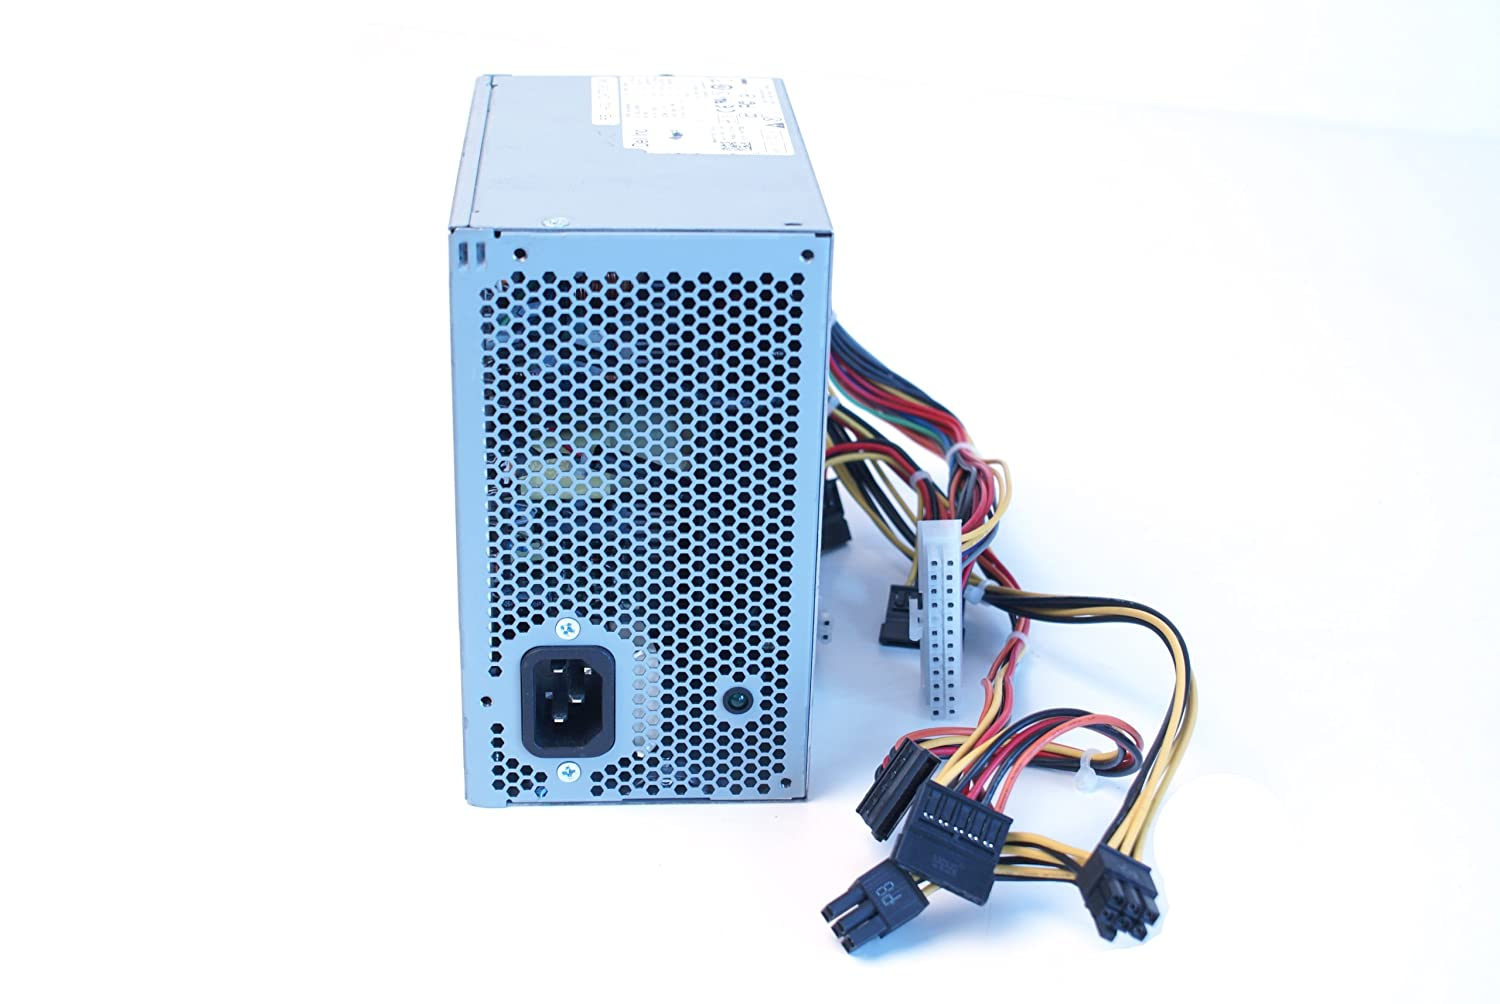 Dell 460w Power Supply Unit Psu For Xps 7100 8300 Part Bn9601856a Psmps Printed Circuit Board Assembly Oem Systems D460ad 00 Industrial Scientific